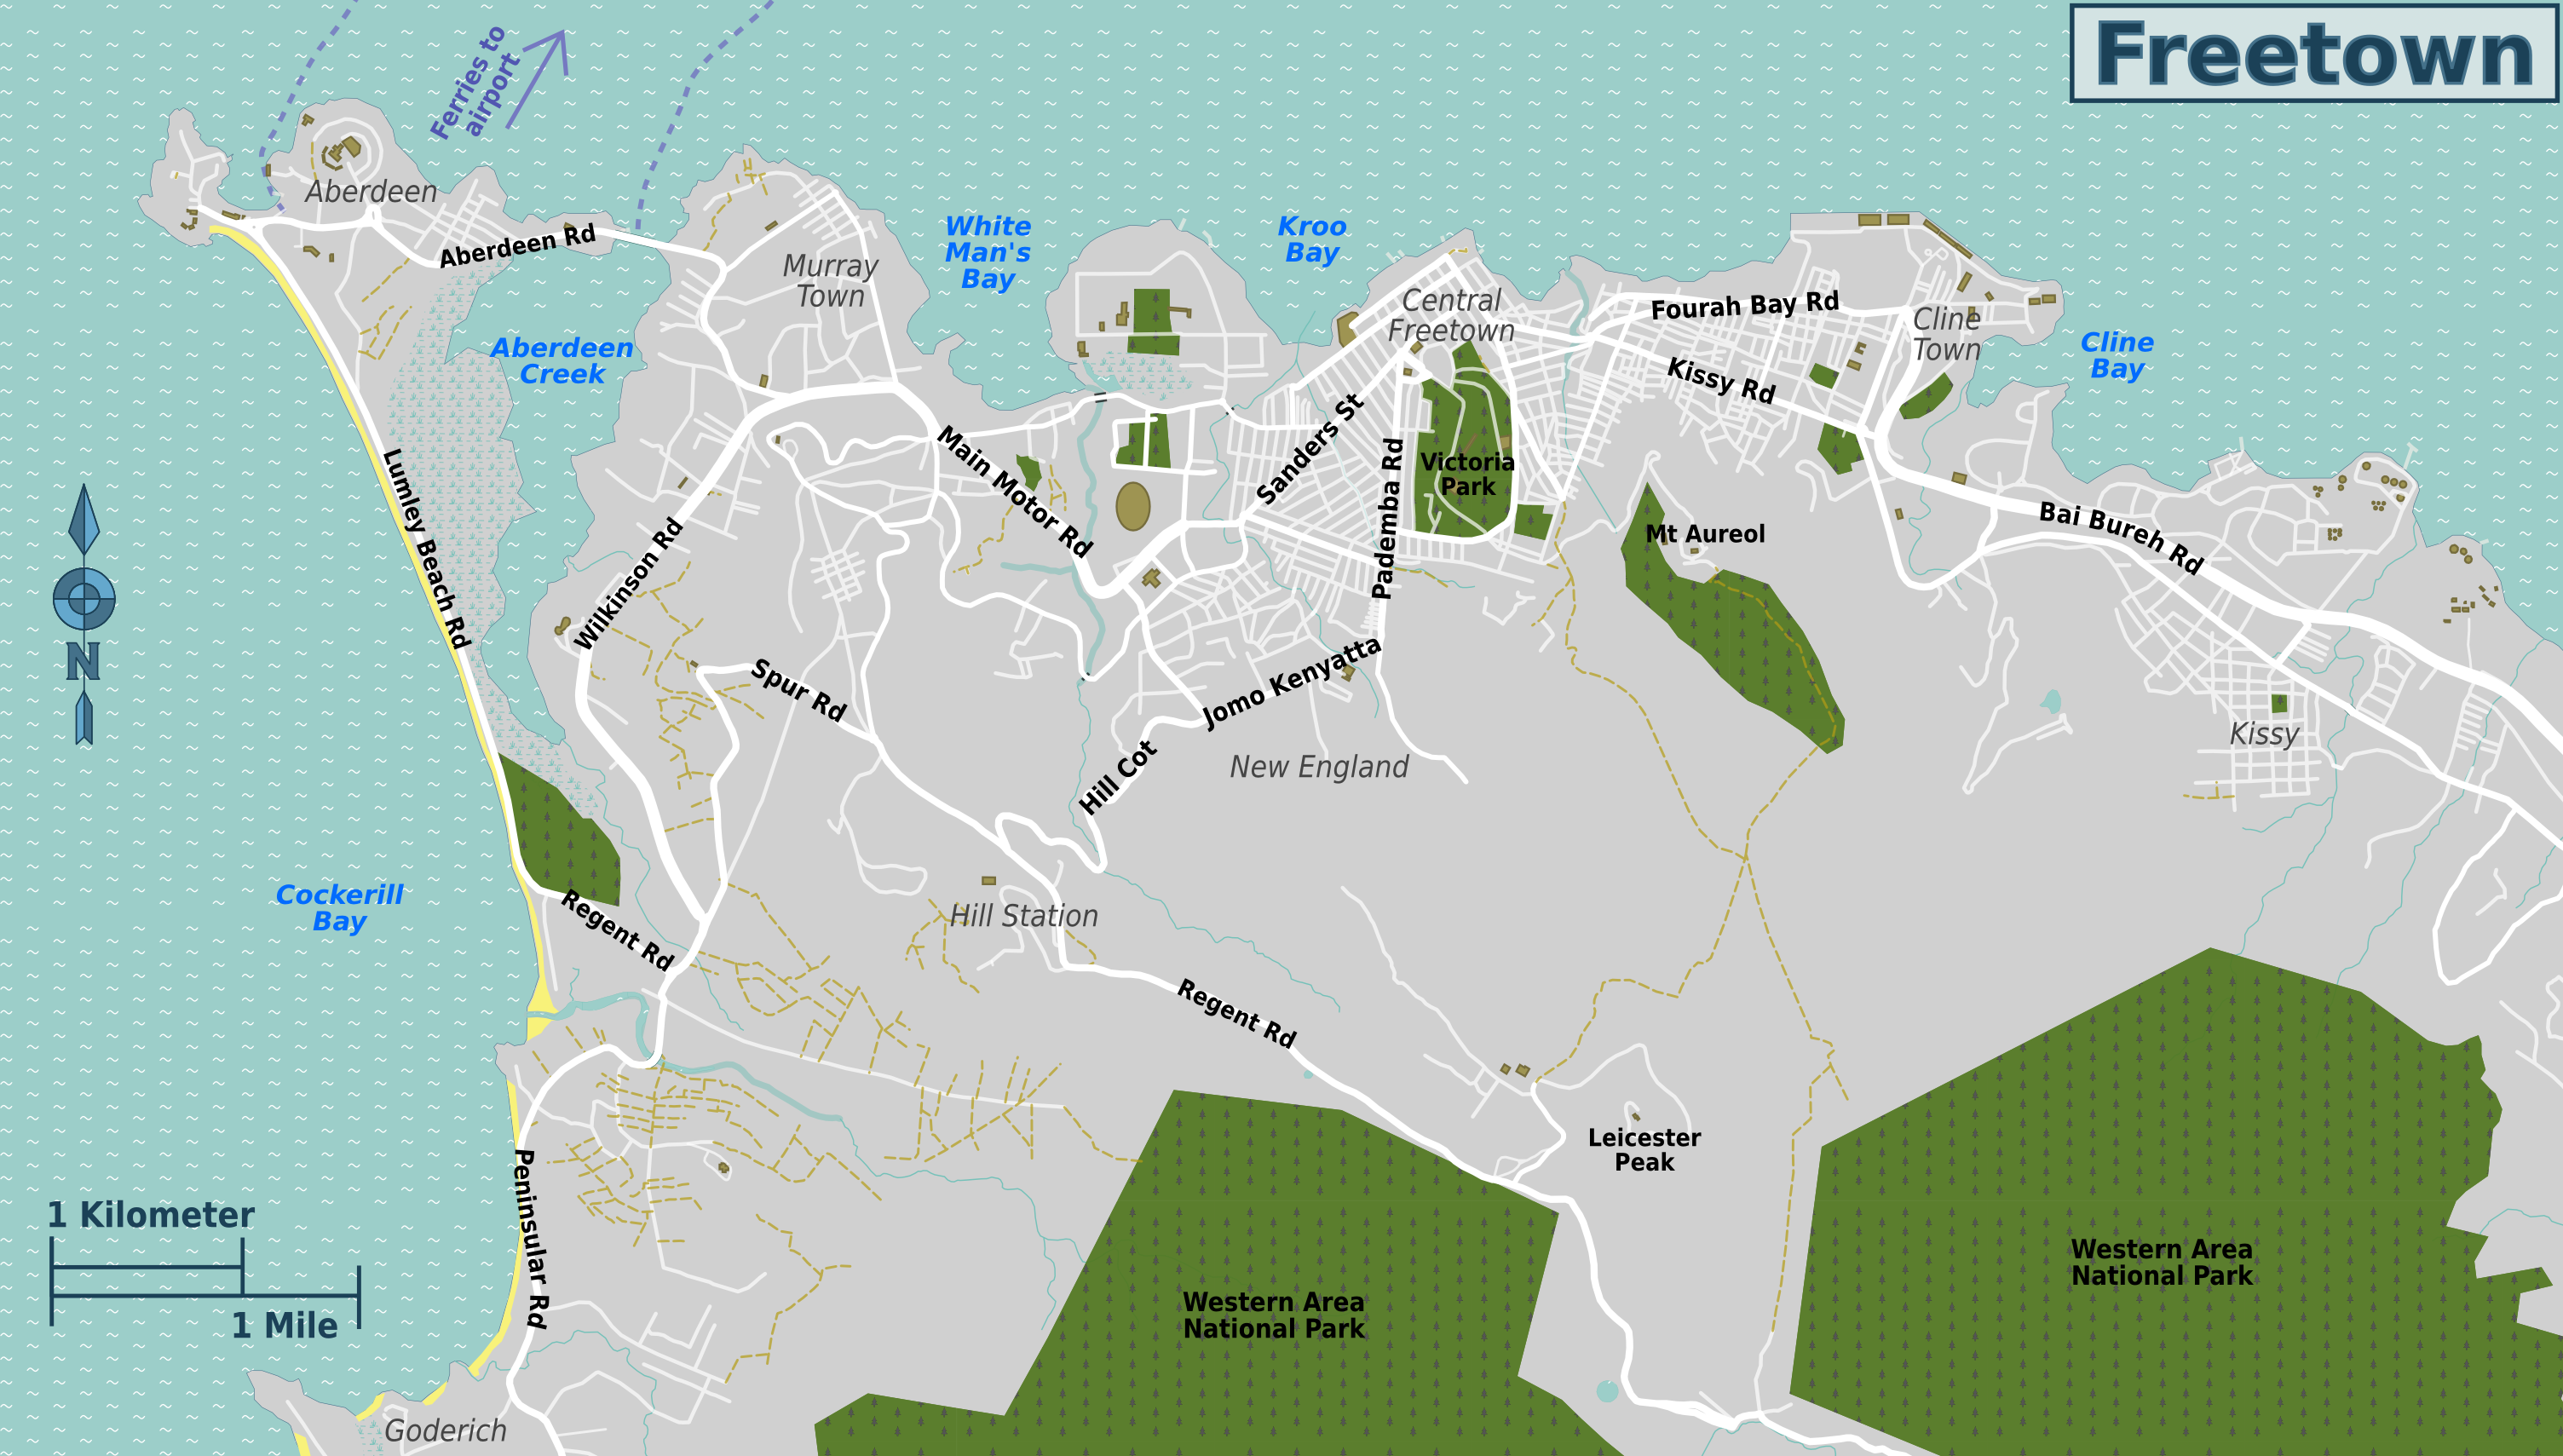 File:Freetown overview map.png - Wikimedia Commons Freetown Map